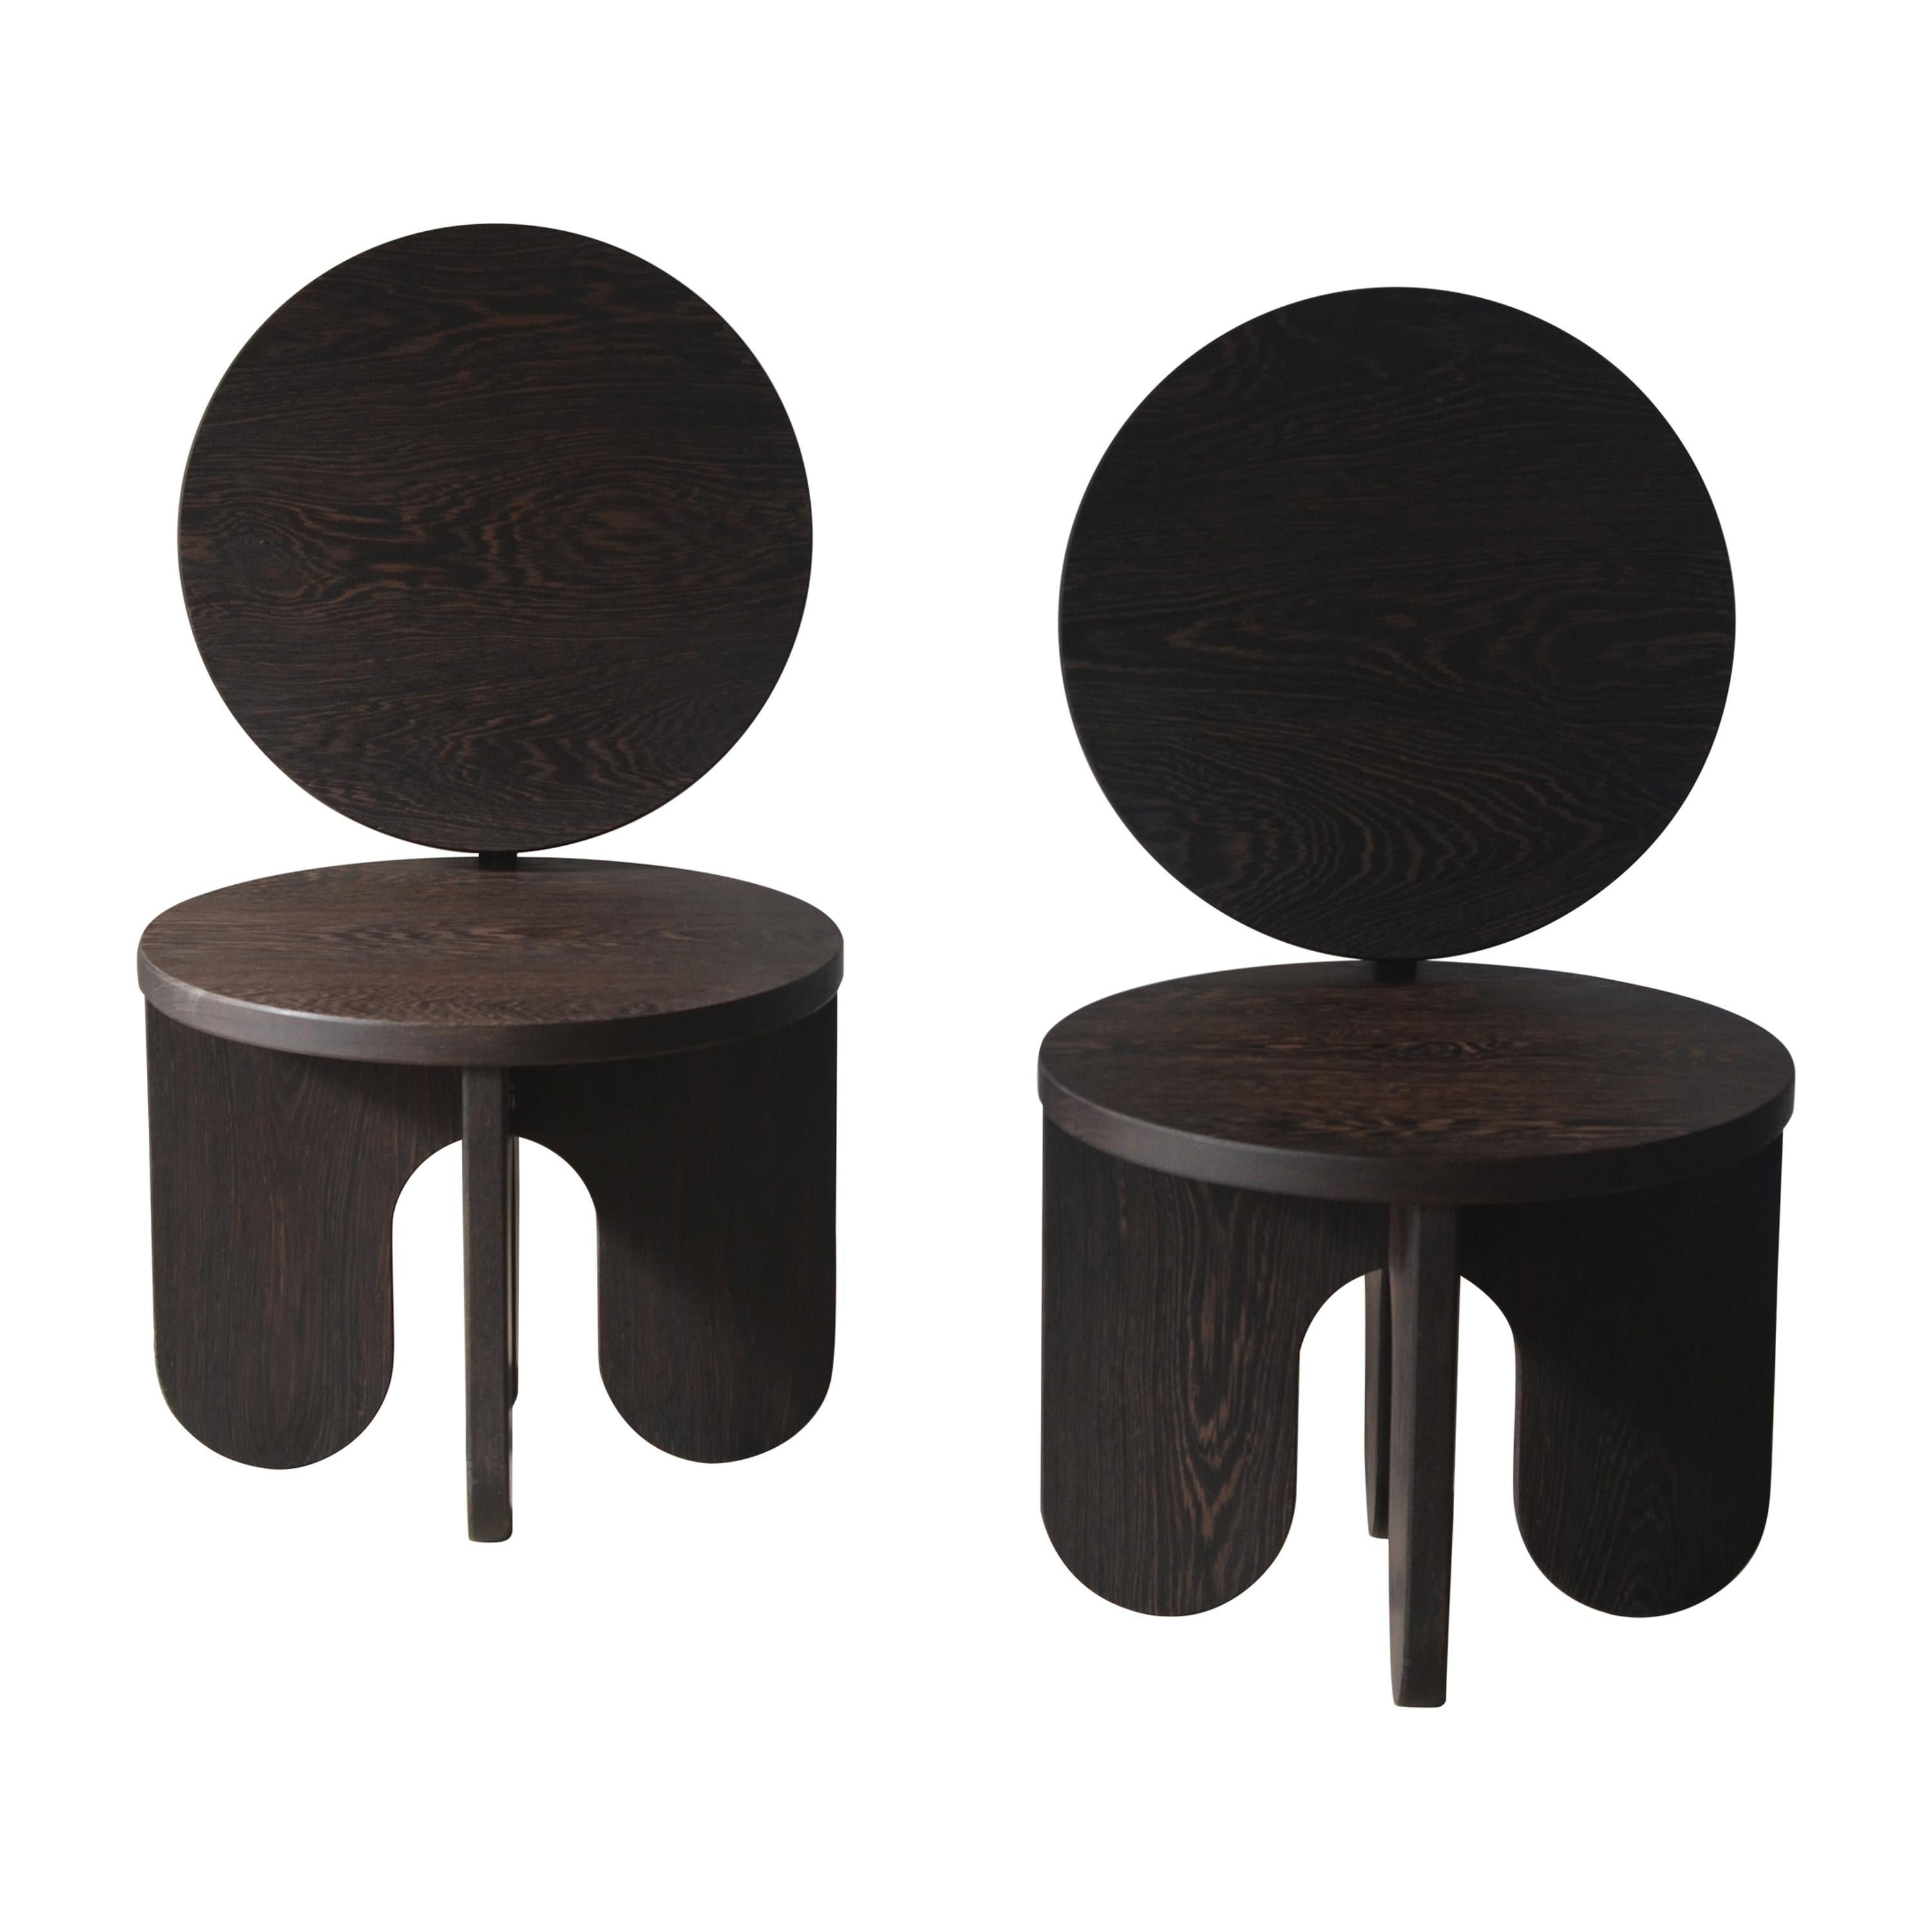 Set of 2 Capsule Lounge Chairs by Owl